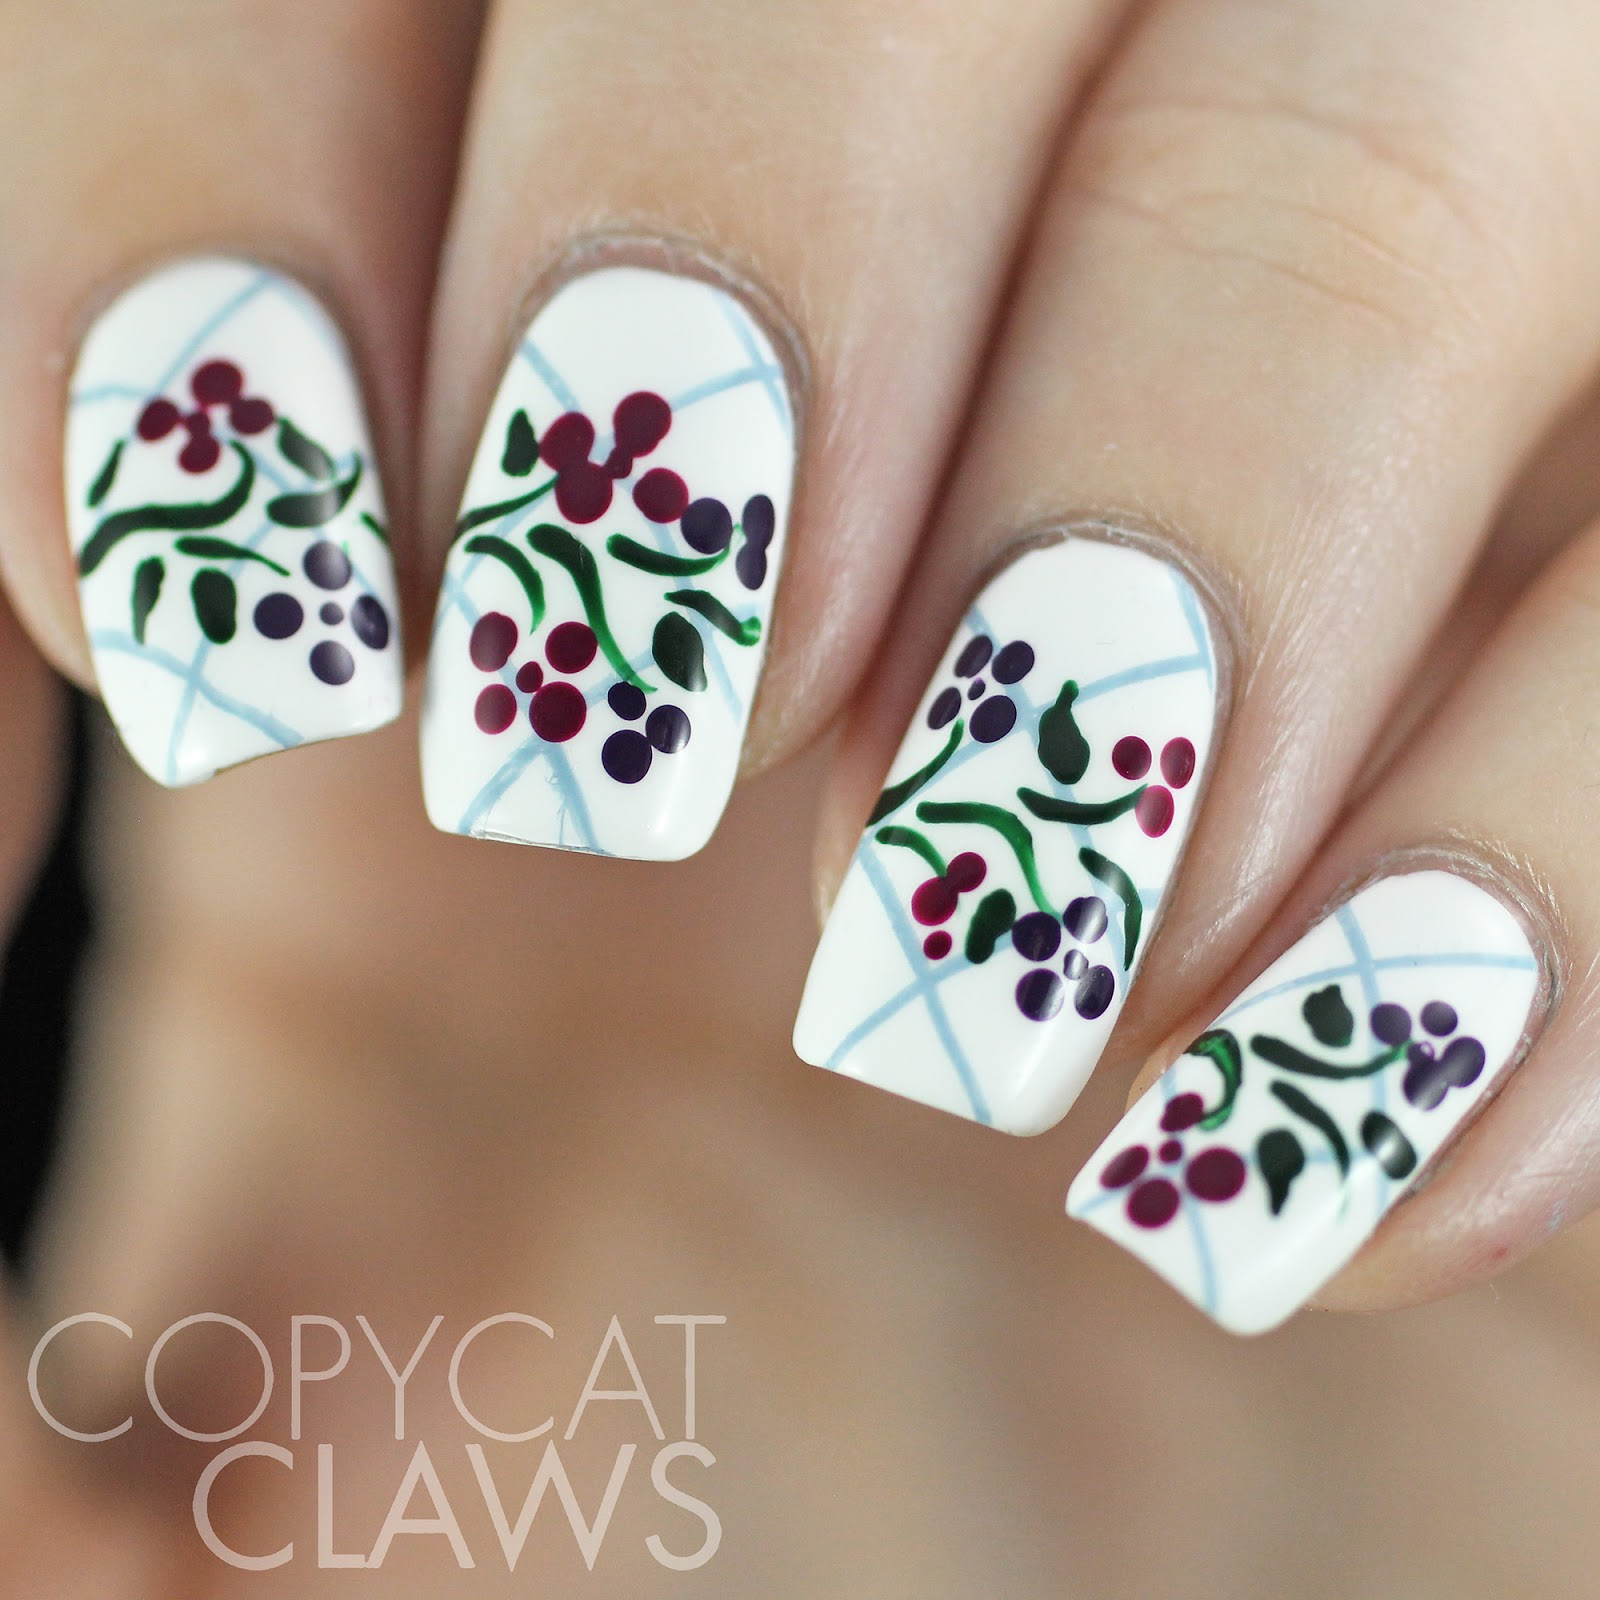 Copycat Claws Blue Color Block Nail Art: Copycat Claws: The Digit-al Dozen Does Patterns On